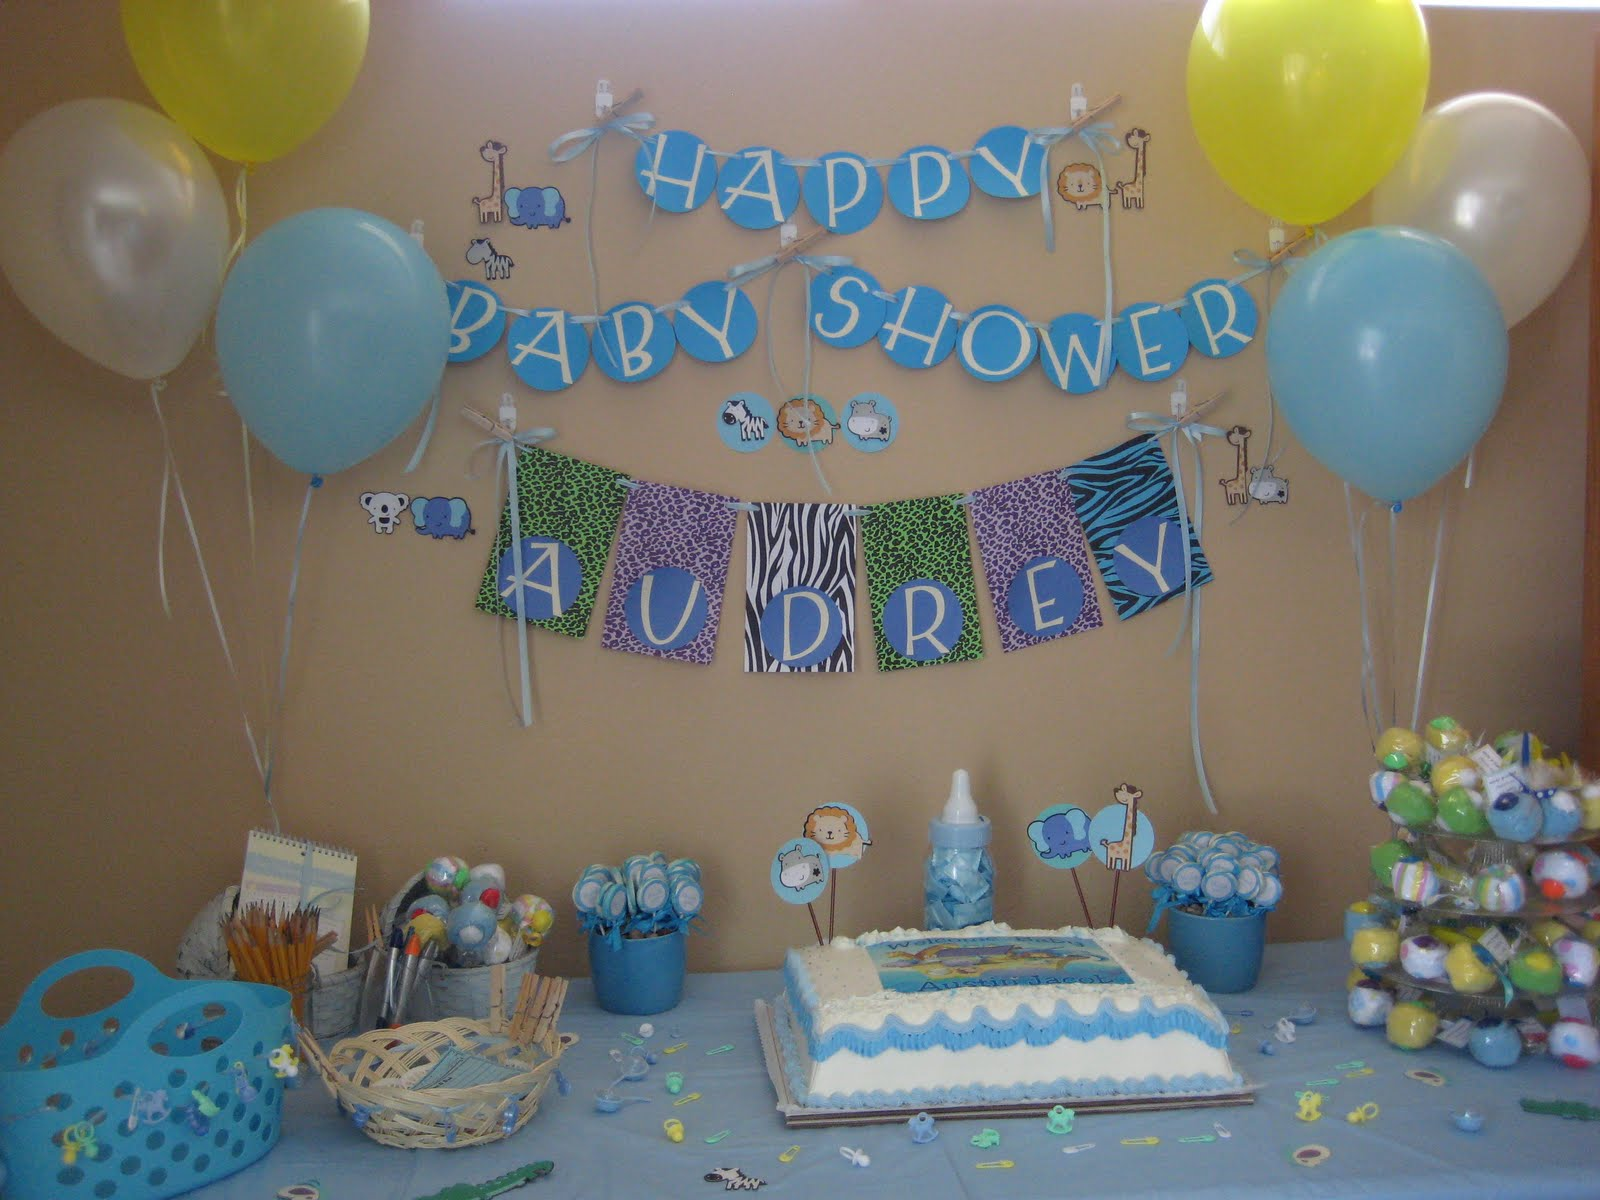 Decoracion Baby Shower Varon ~ some pictures of the baby shower decorations baby jungle safari theme